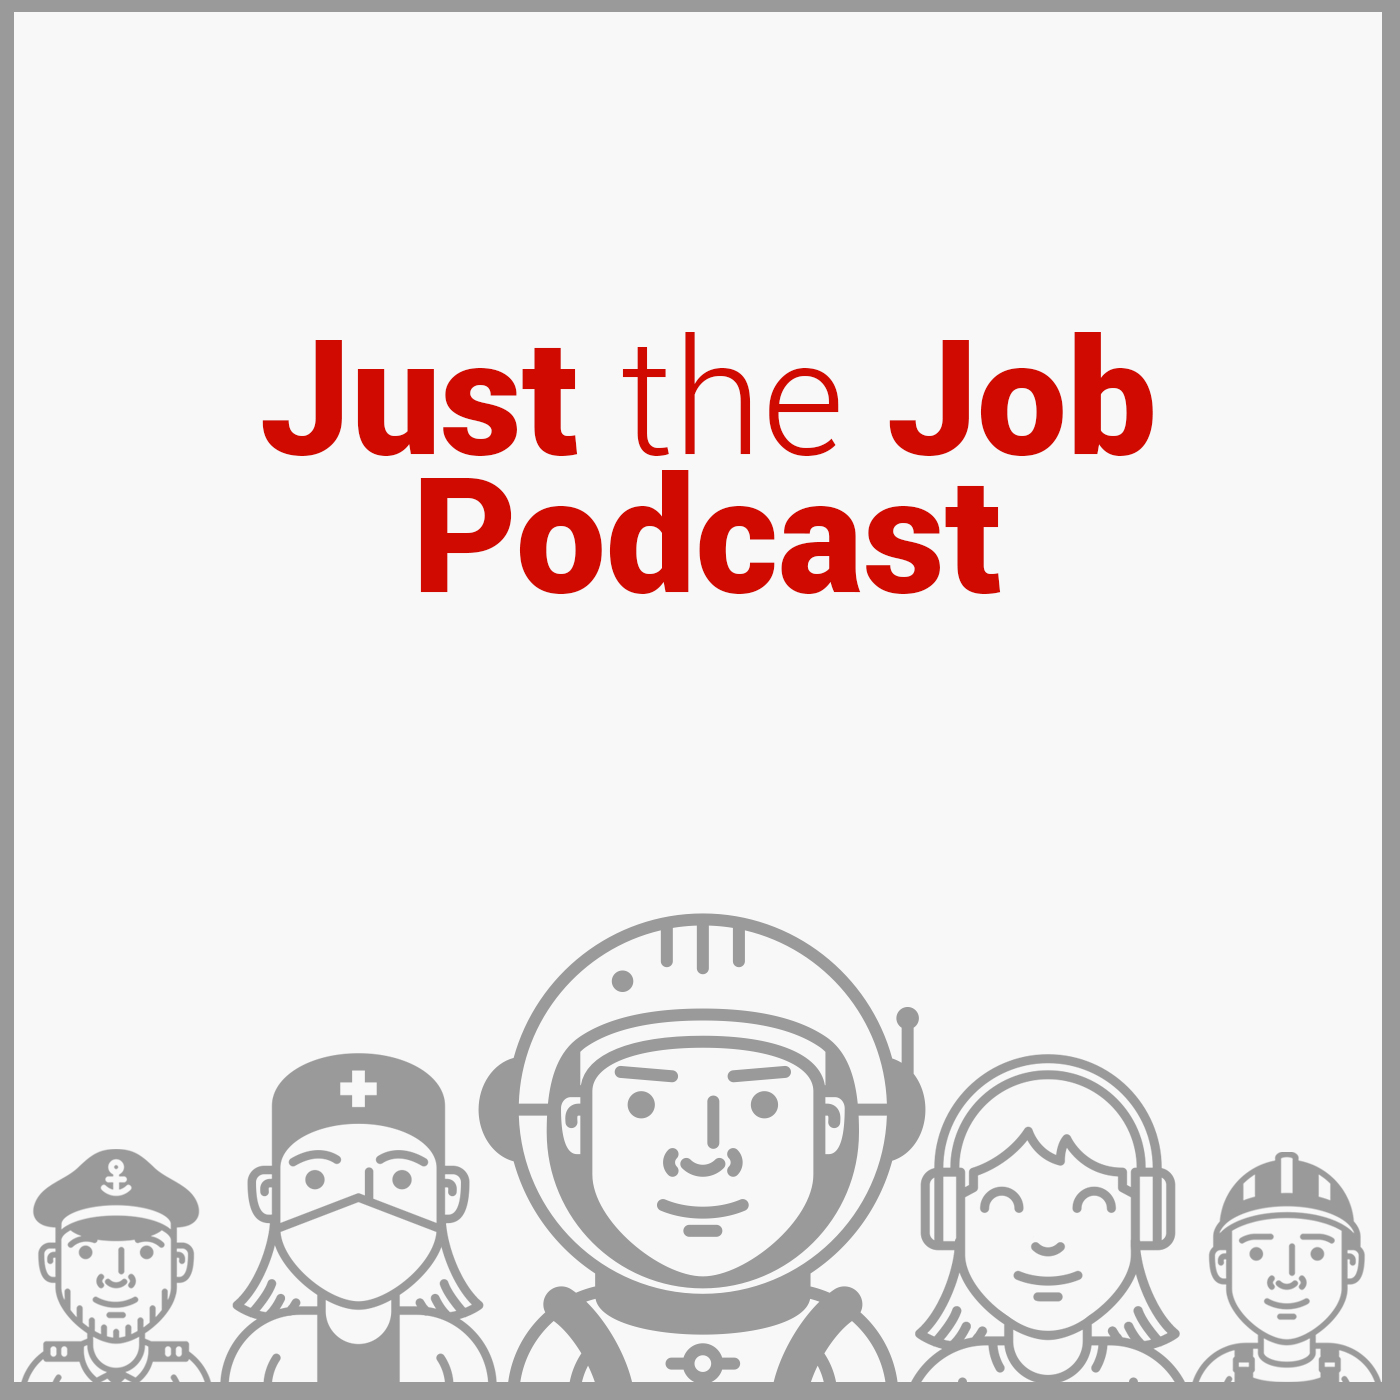 Just the Job Podcast